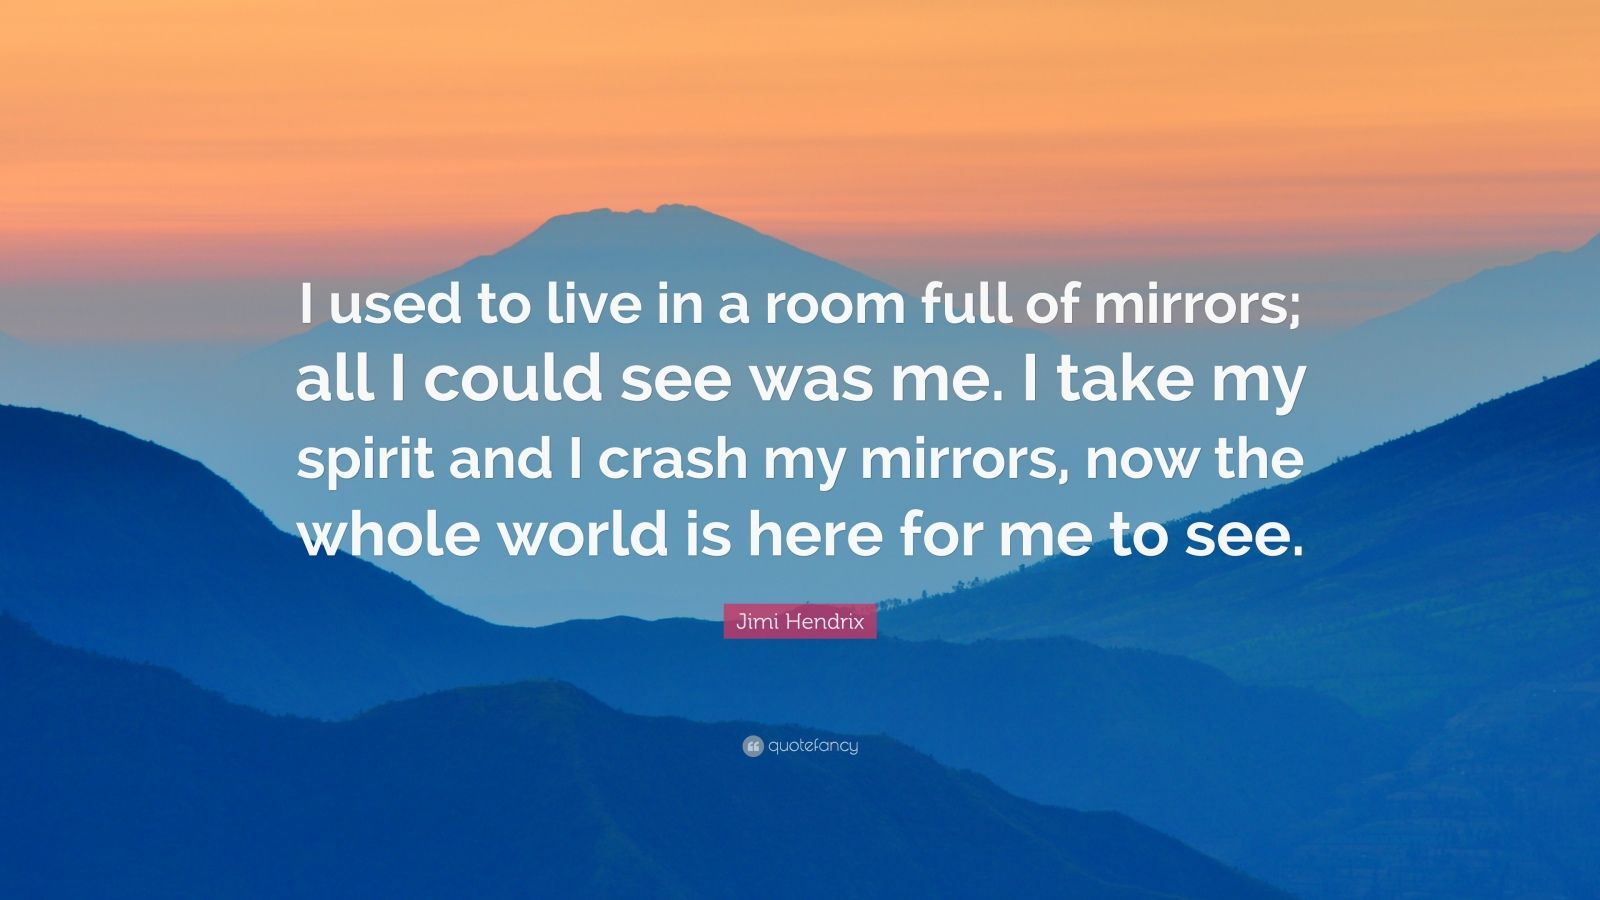 """Jimi Hendrix Quote: """"I used to live in a room full of mirrors; all I could see was me. I take my spirit and I crash my mirrors, now the whole world is here for me to see."""""""